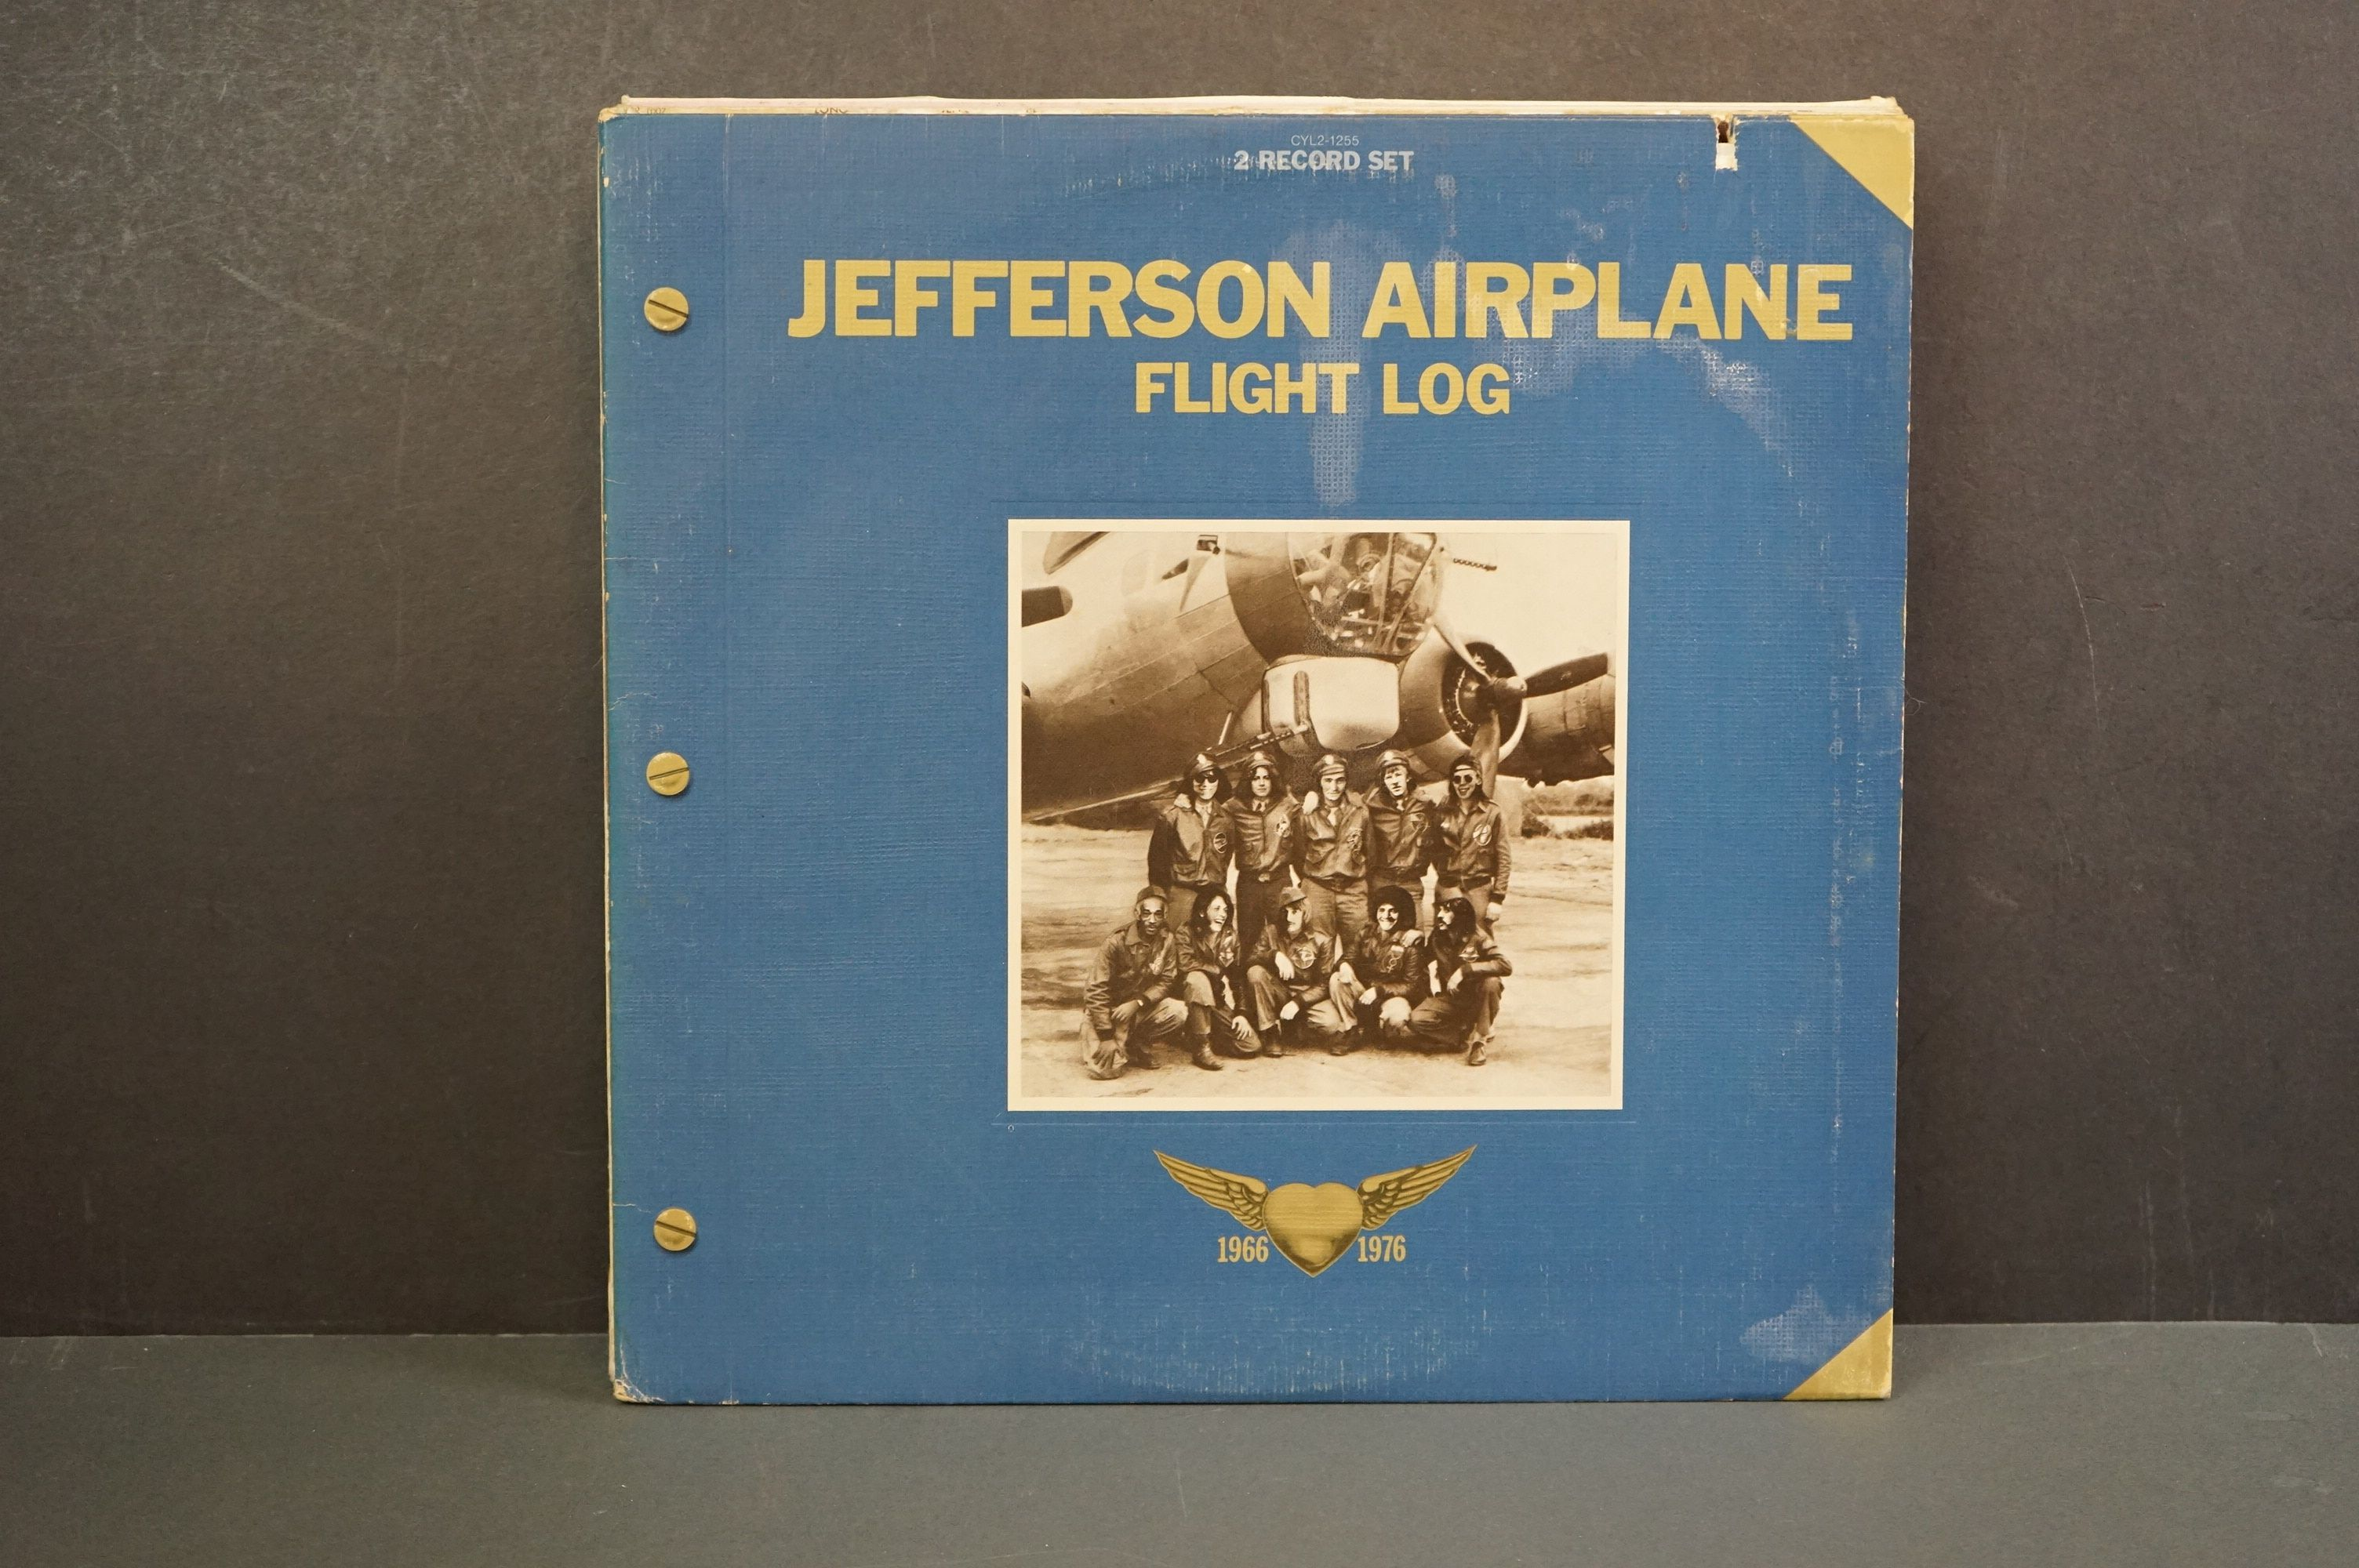 Vinyl - 10 Jefferson Airplane LPs to include Surrealistia Pillow / After Bathing at Baxter's (89301) - Image 6 of 16